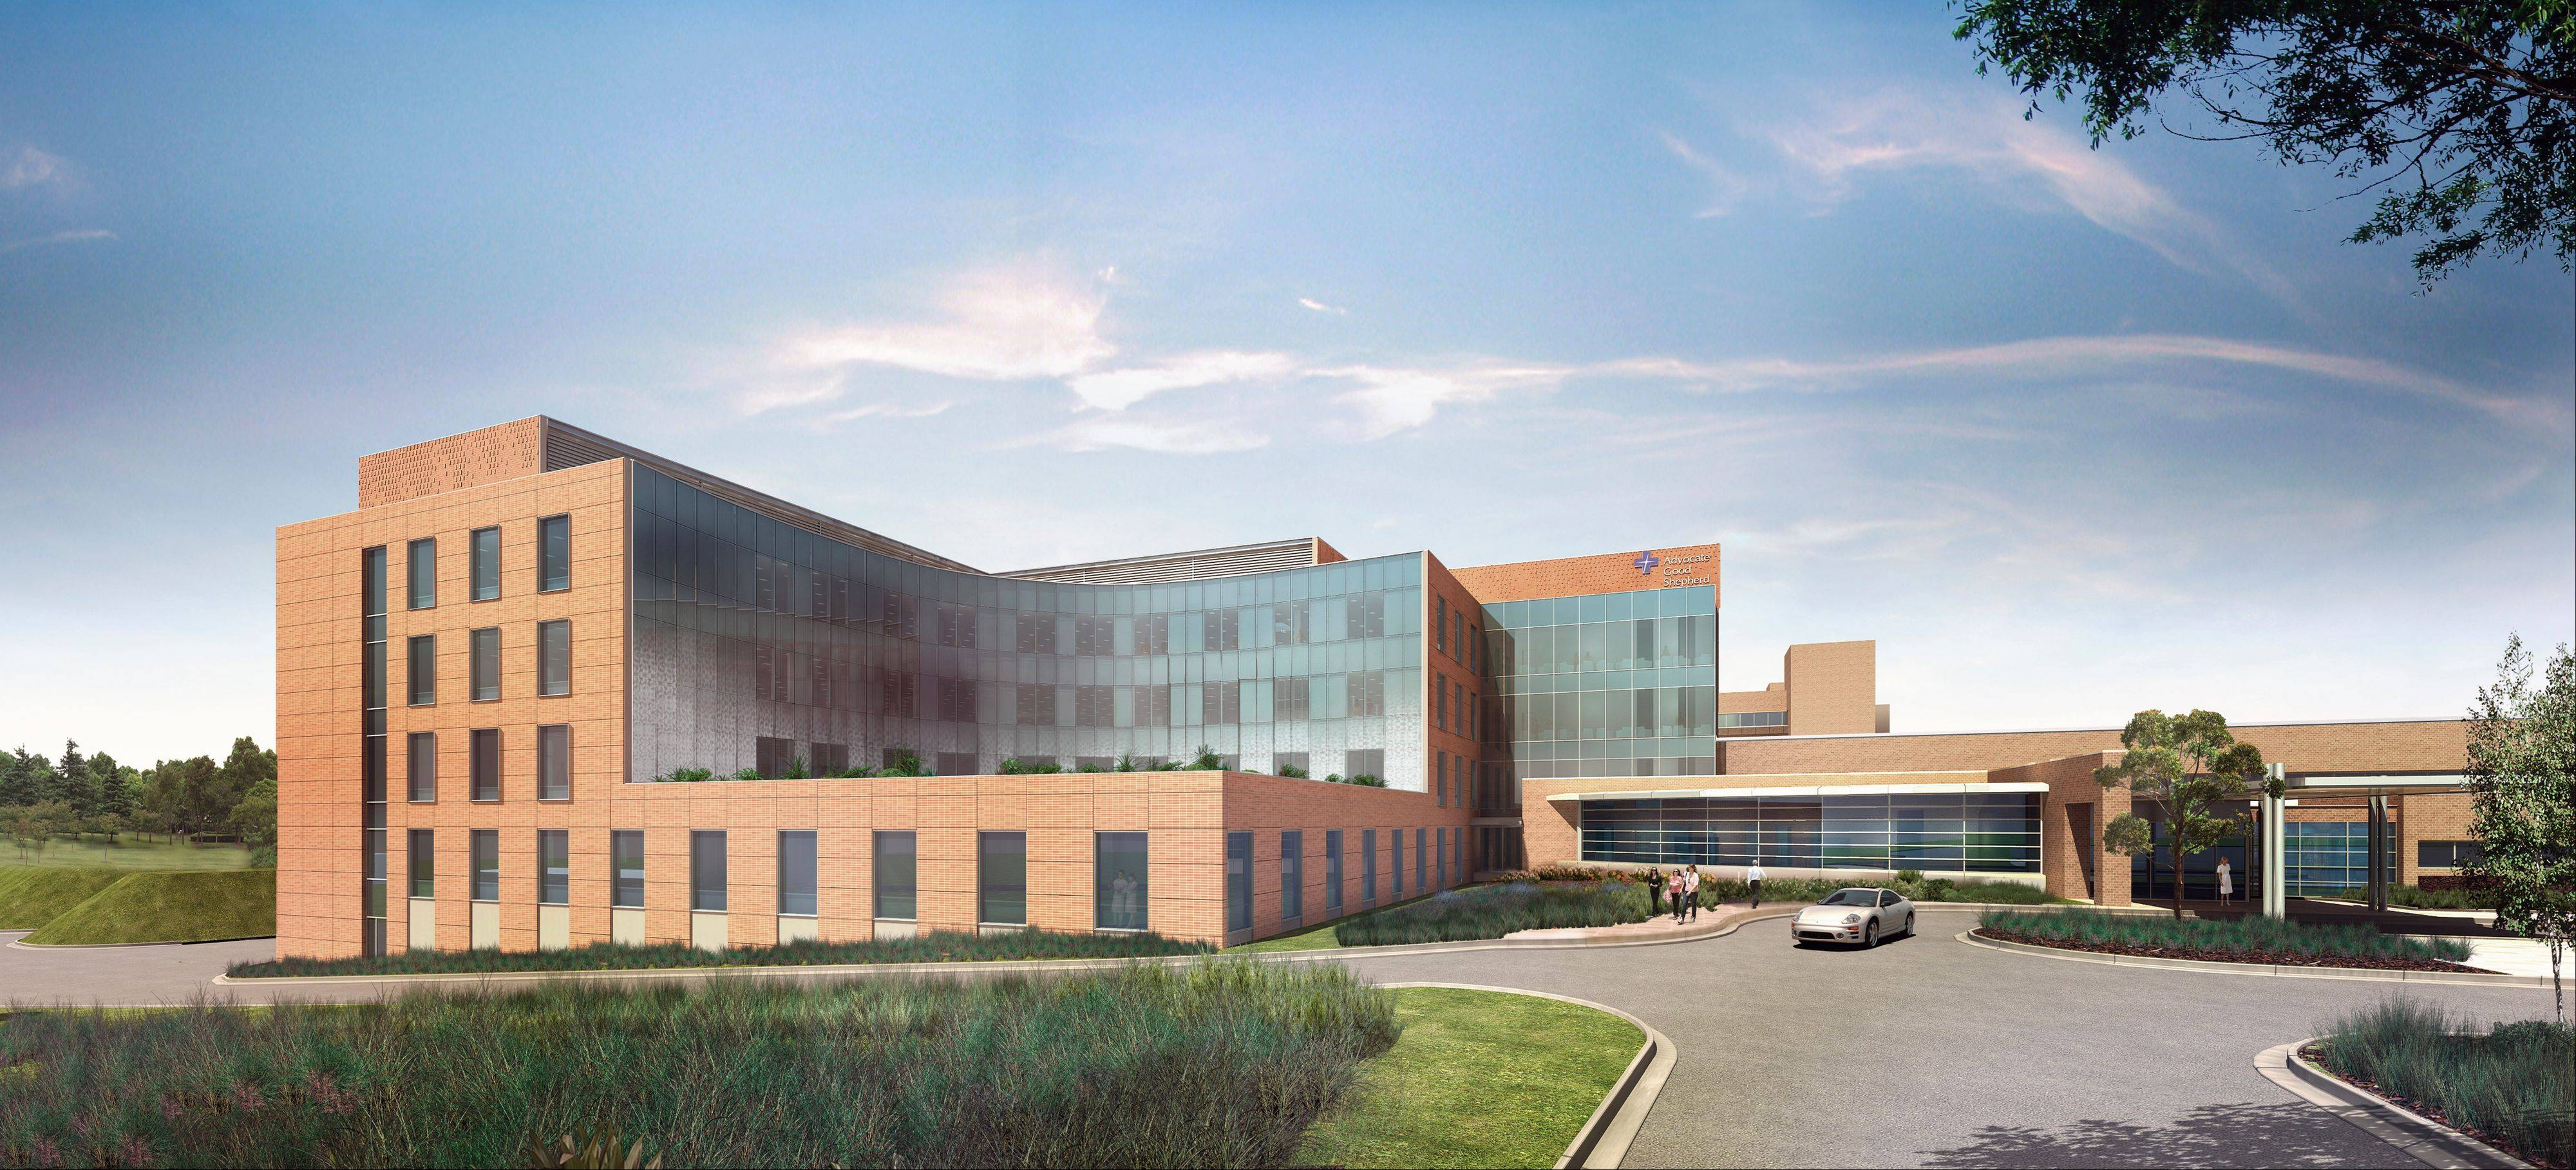 An artist's rendering of the north side of Advocate Good Shepherd Hospital after a proposed modernization.